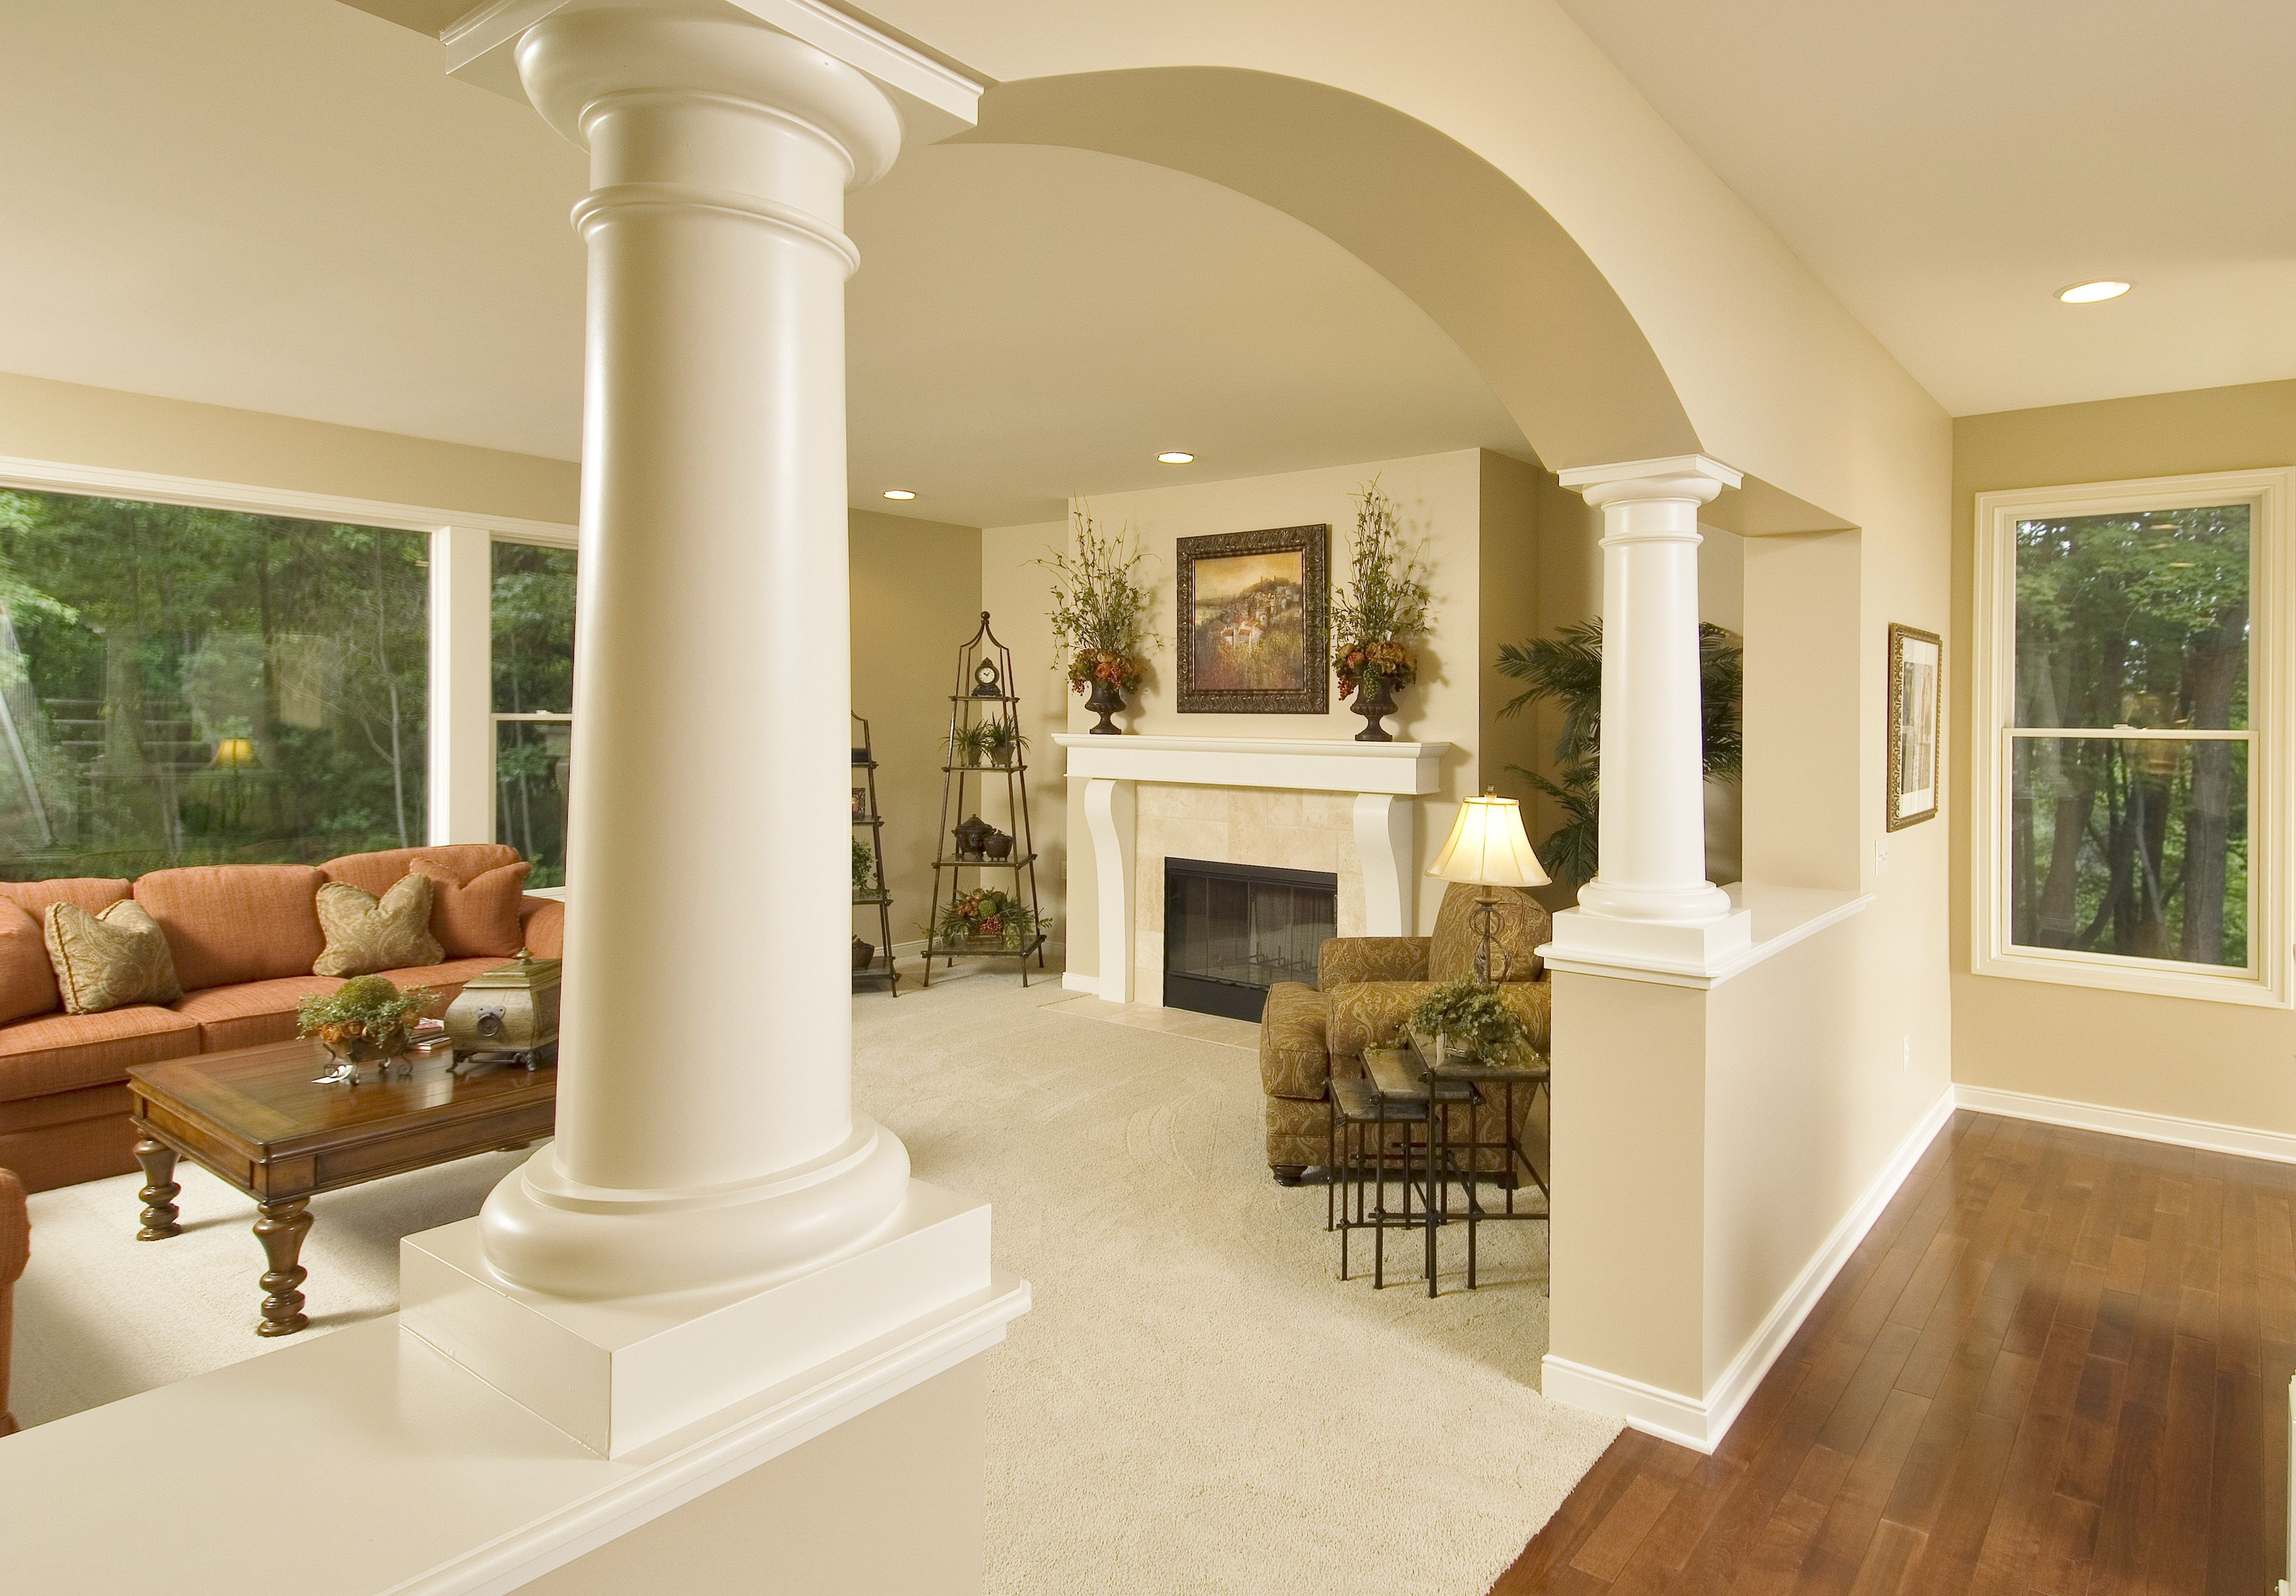 Arched Opening With Custom Painted Columns, Large Picture Window, Ceramic